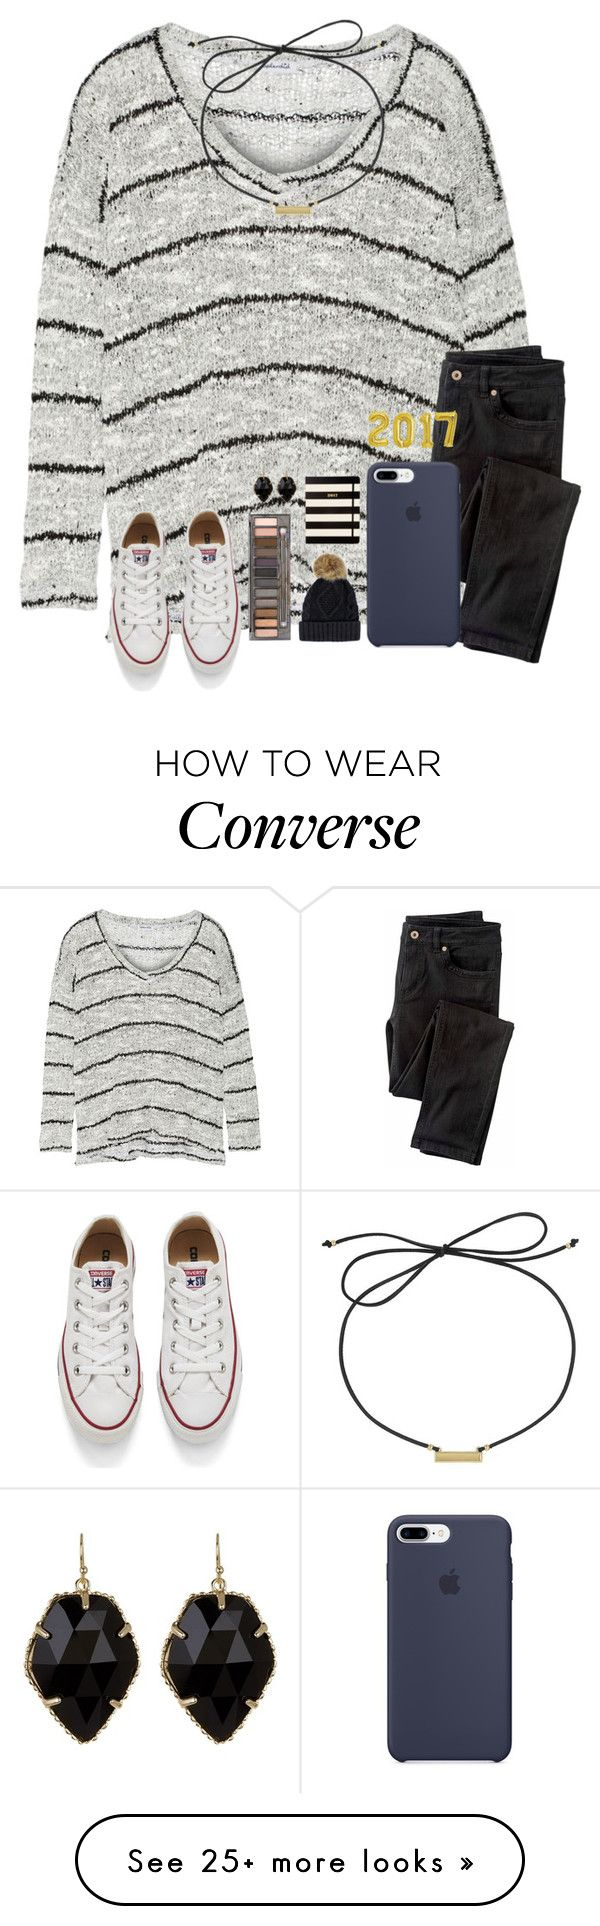 """Hey there 2017, please treat me well :)"" by kari-luvs-u-2 on Polyvore featuring Splendid, Wrap, Converse, Urban Decay, Laundry by Shelli Segal, Kate Spade and Kendra Scott"